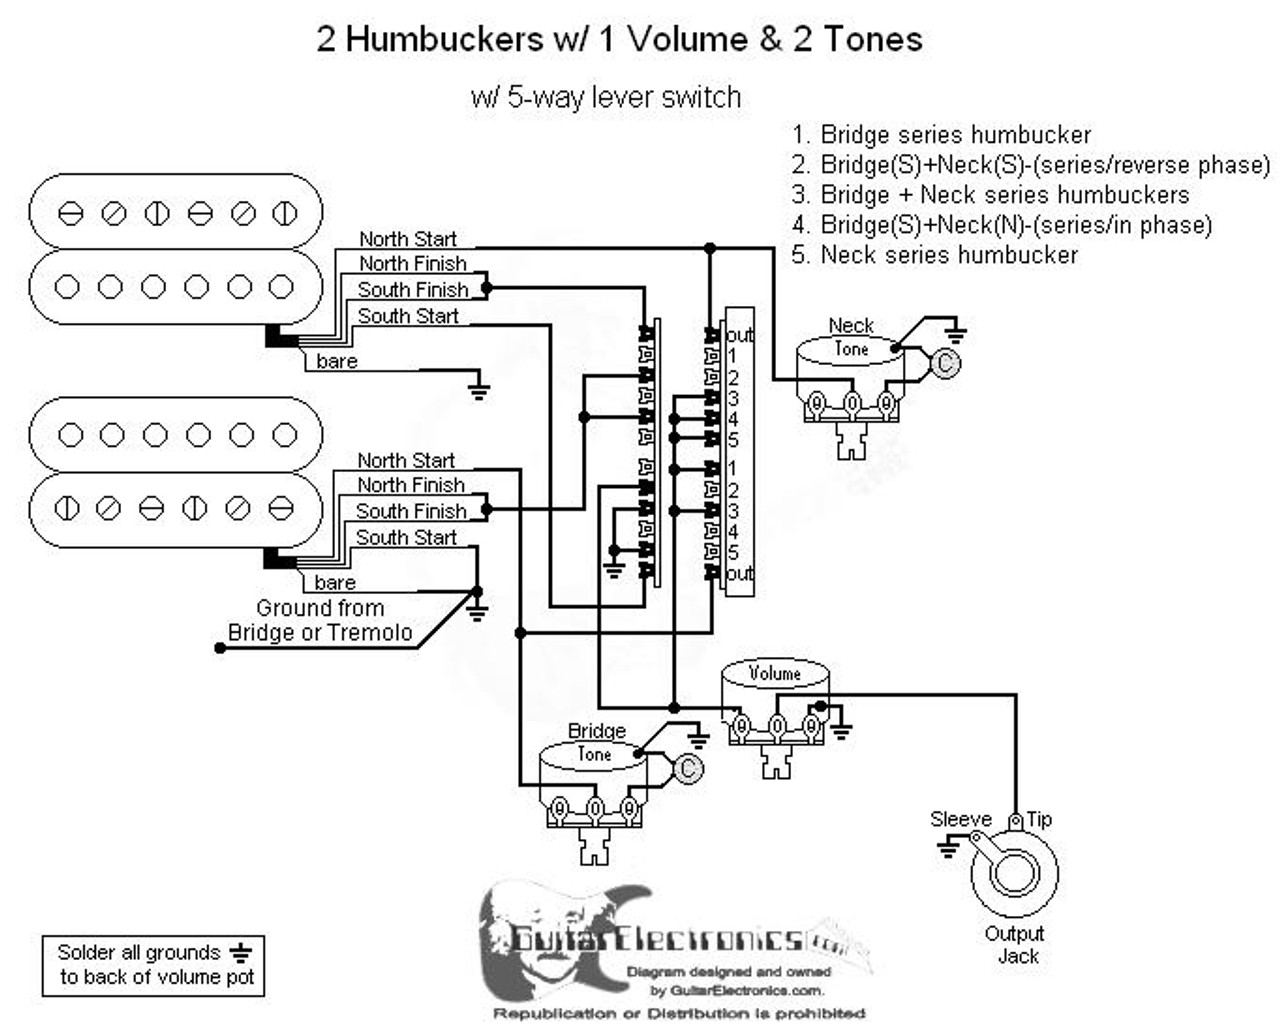 two humbucker w 1 volume and 2 tone 5 way switch wiring diagram Vintage Mini Humbucker Wiring Diagrams